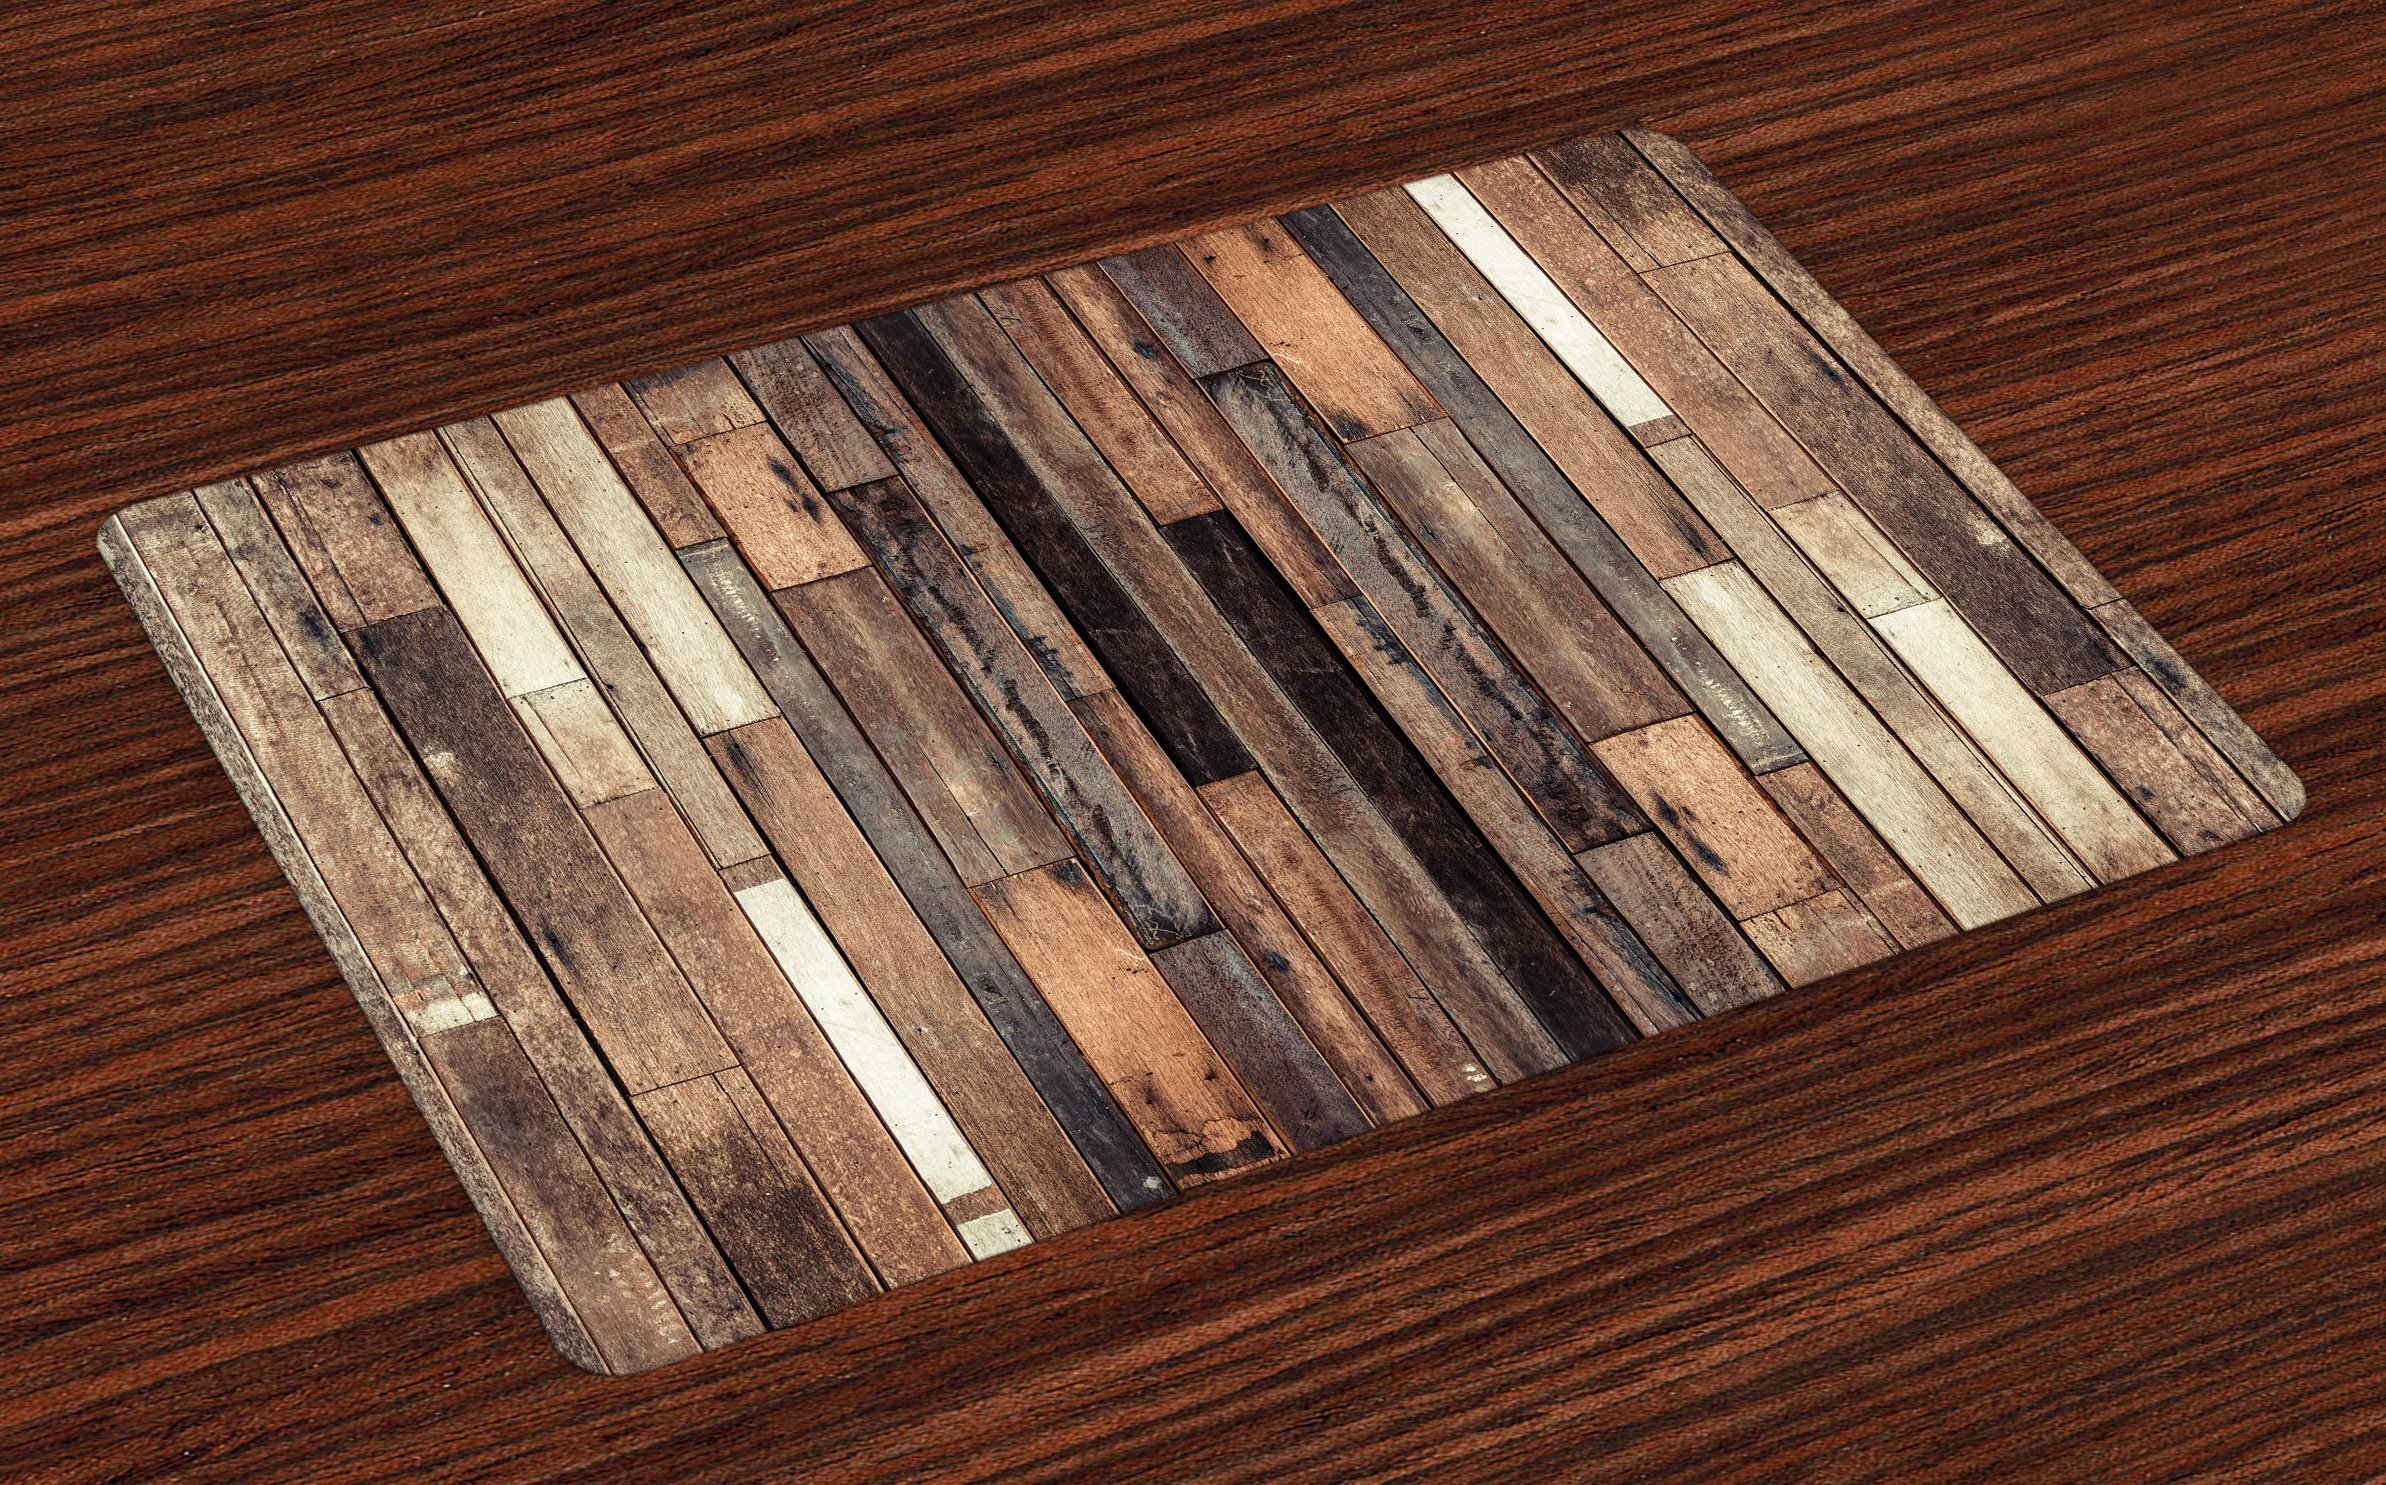 Ambesonne Wood Print Placemats Set of 4, Brown Old Hardwood Floor Plank Grunge Lodge Garage Loft Natural Rural Graphic Artsy Print, Washable Fabric Placemats for Dining Room Kitchen Table Decor, Brown